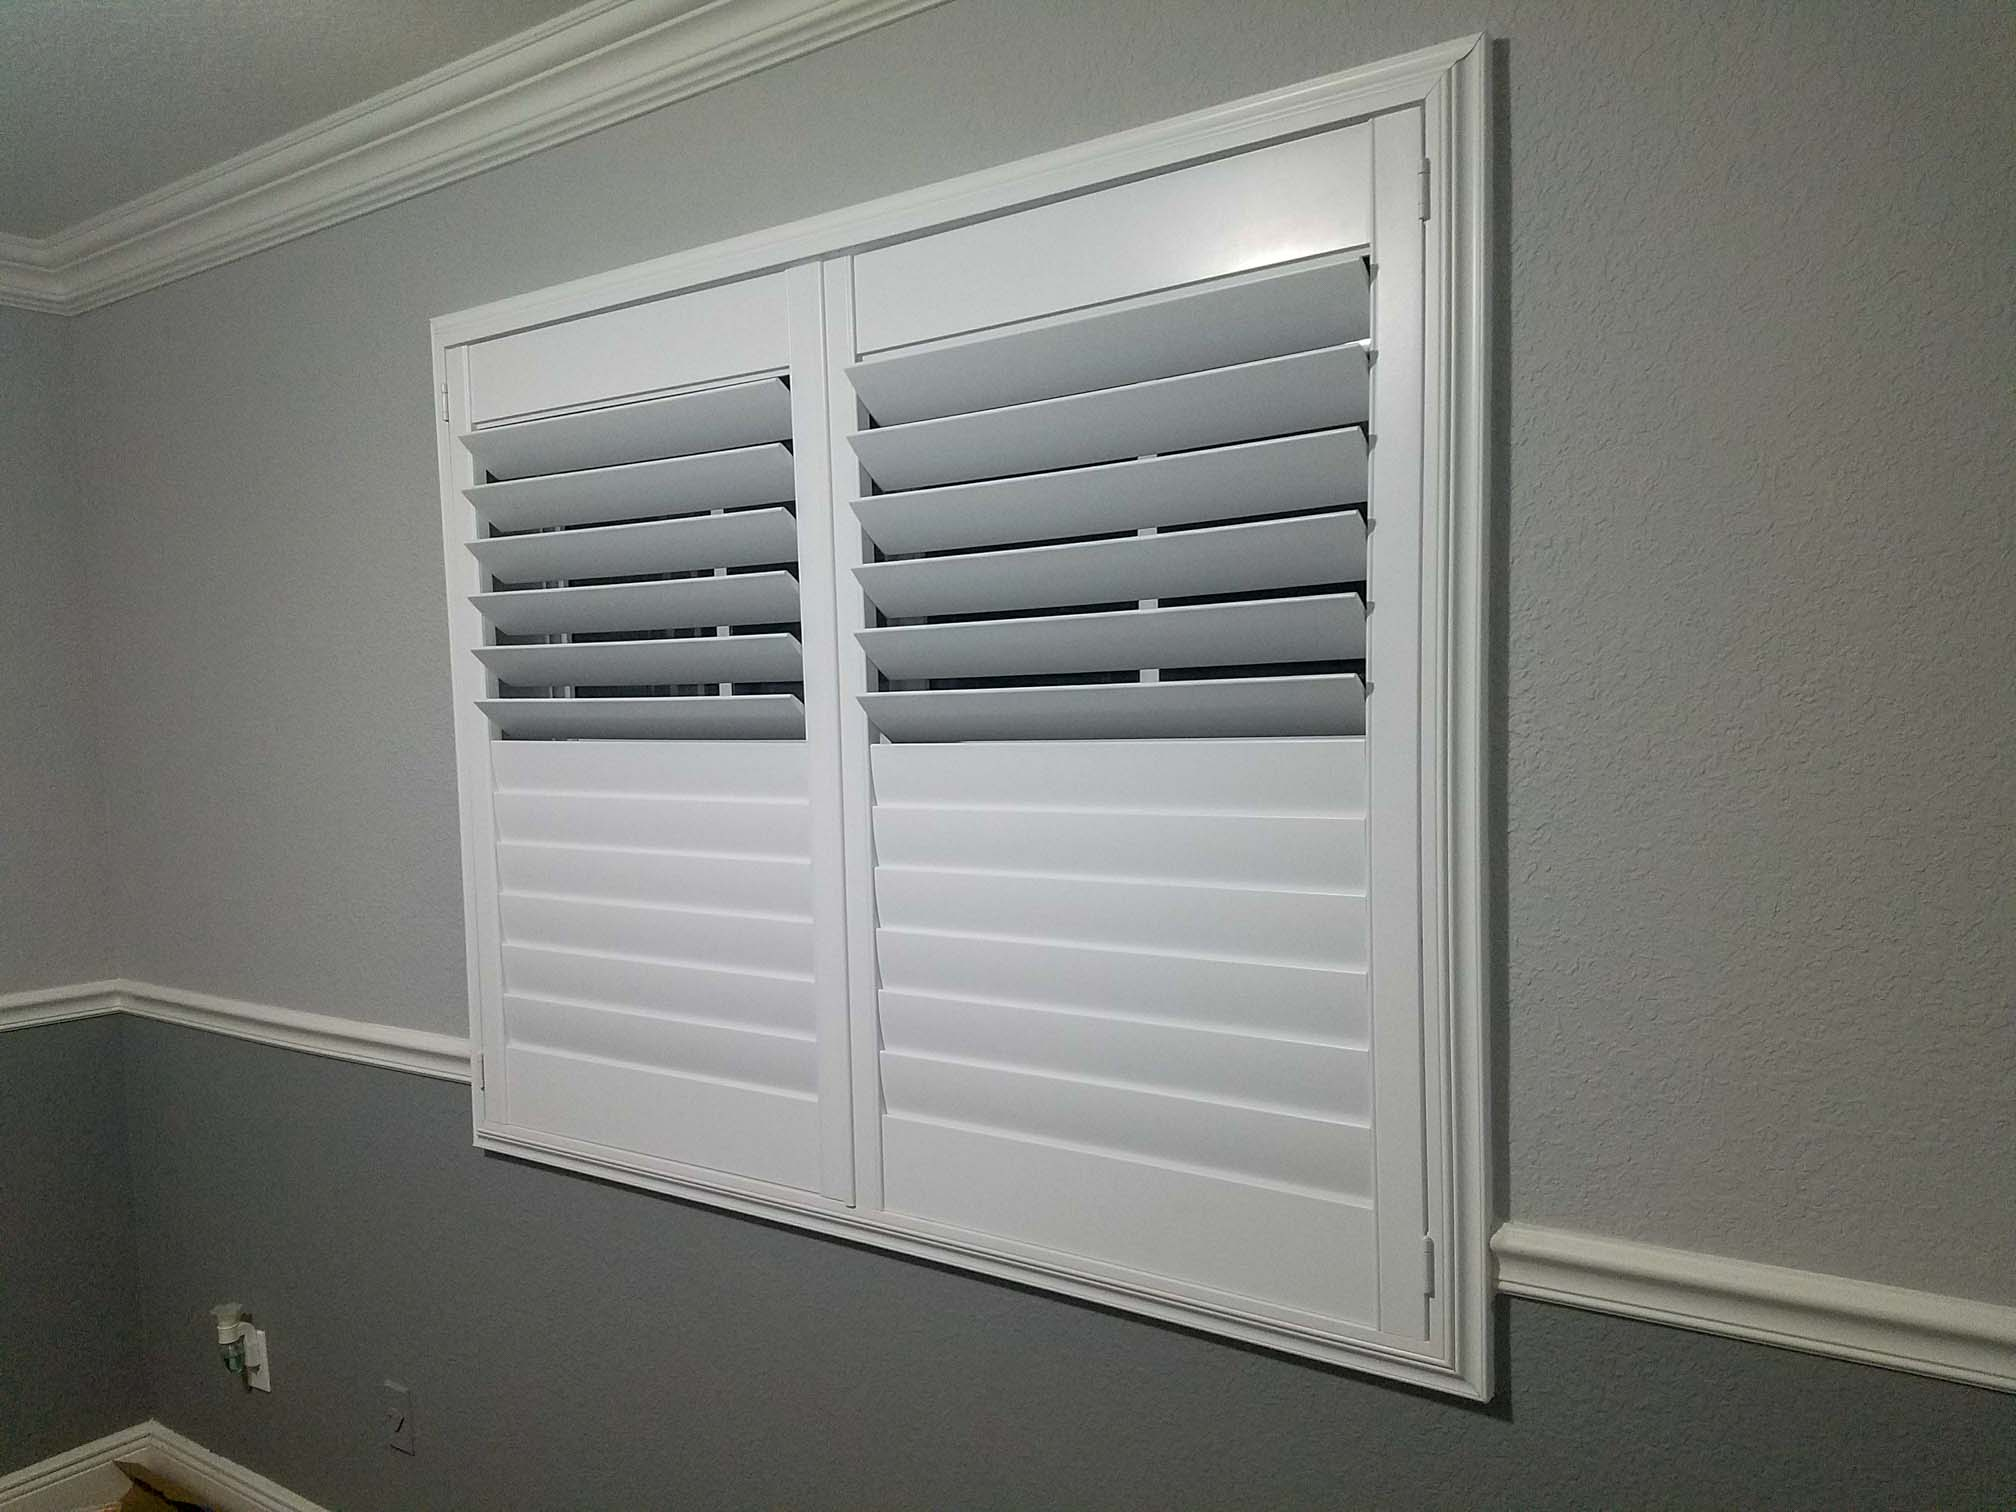 plantation shutters gallery PLANTATION SHUTTERS GALLERY 20180304 204328